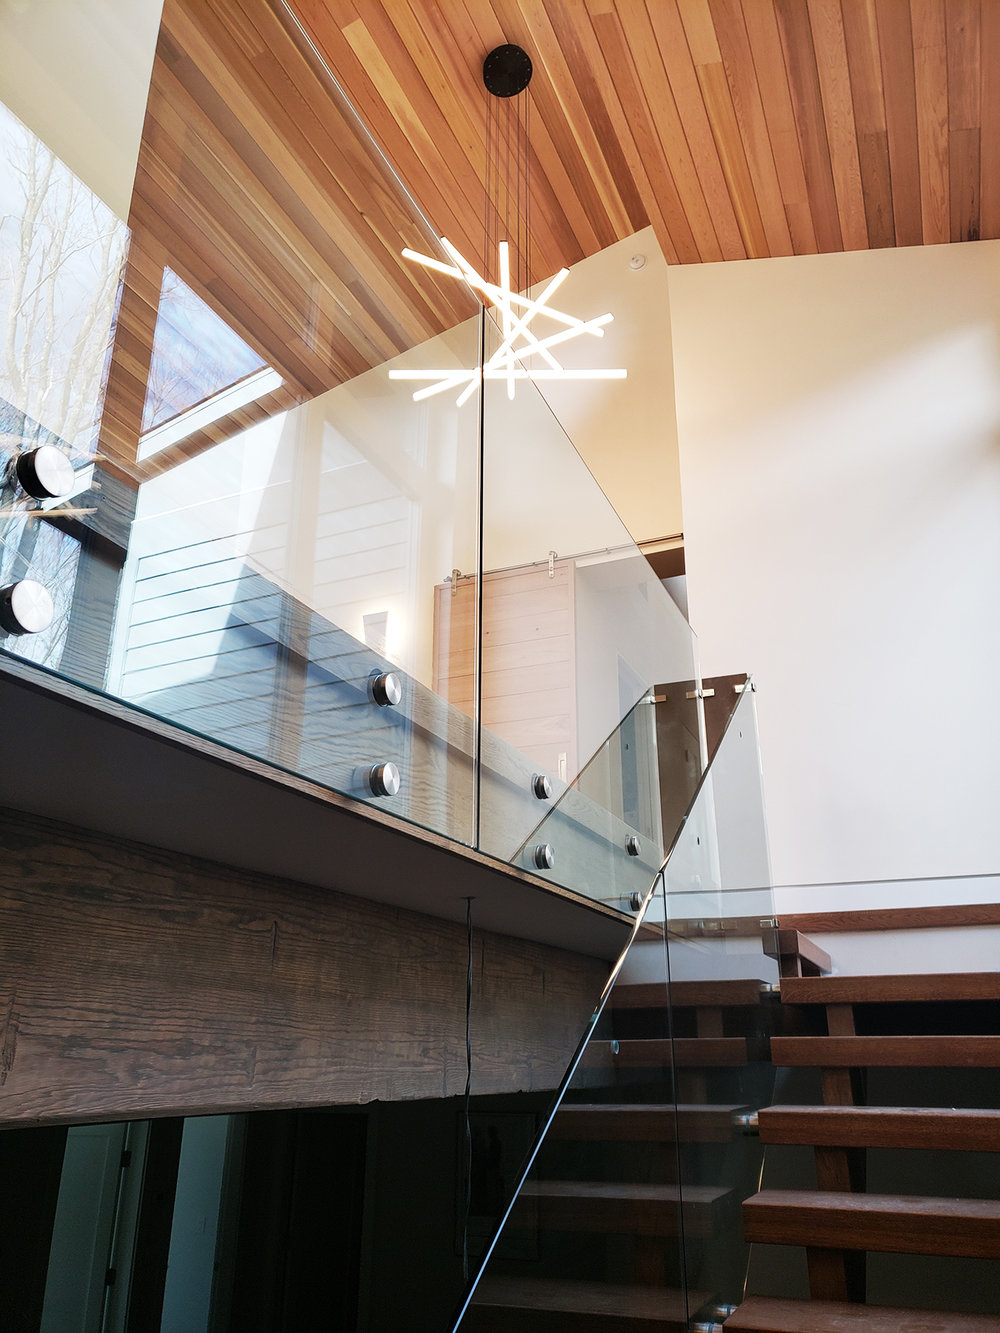 4.11.19 view on staircase.jpg